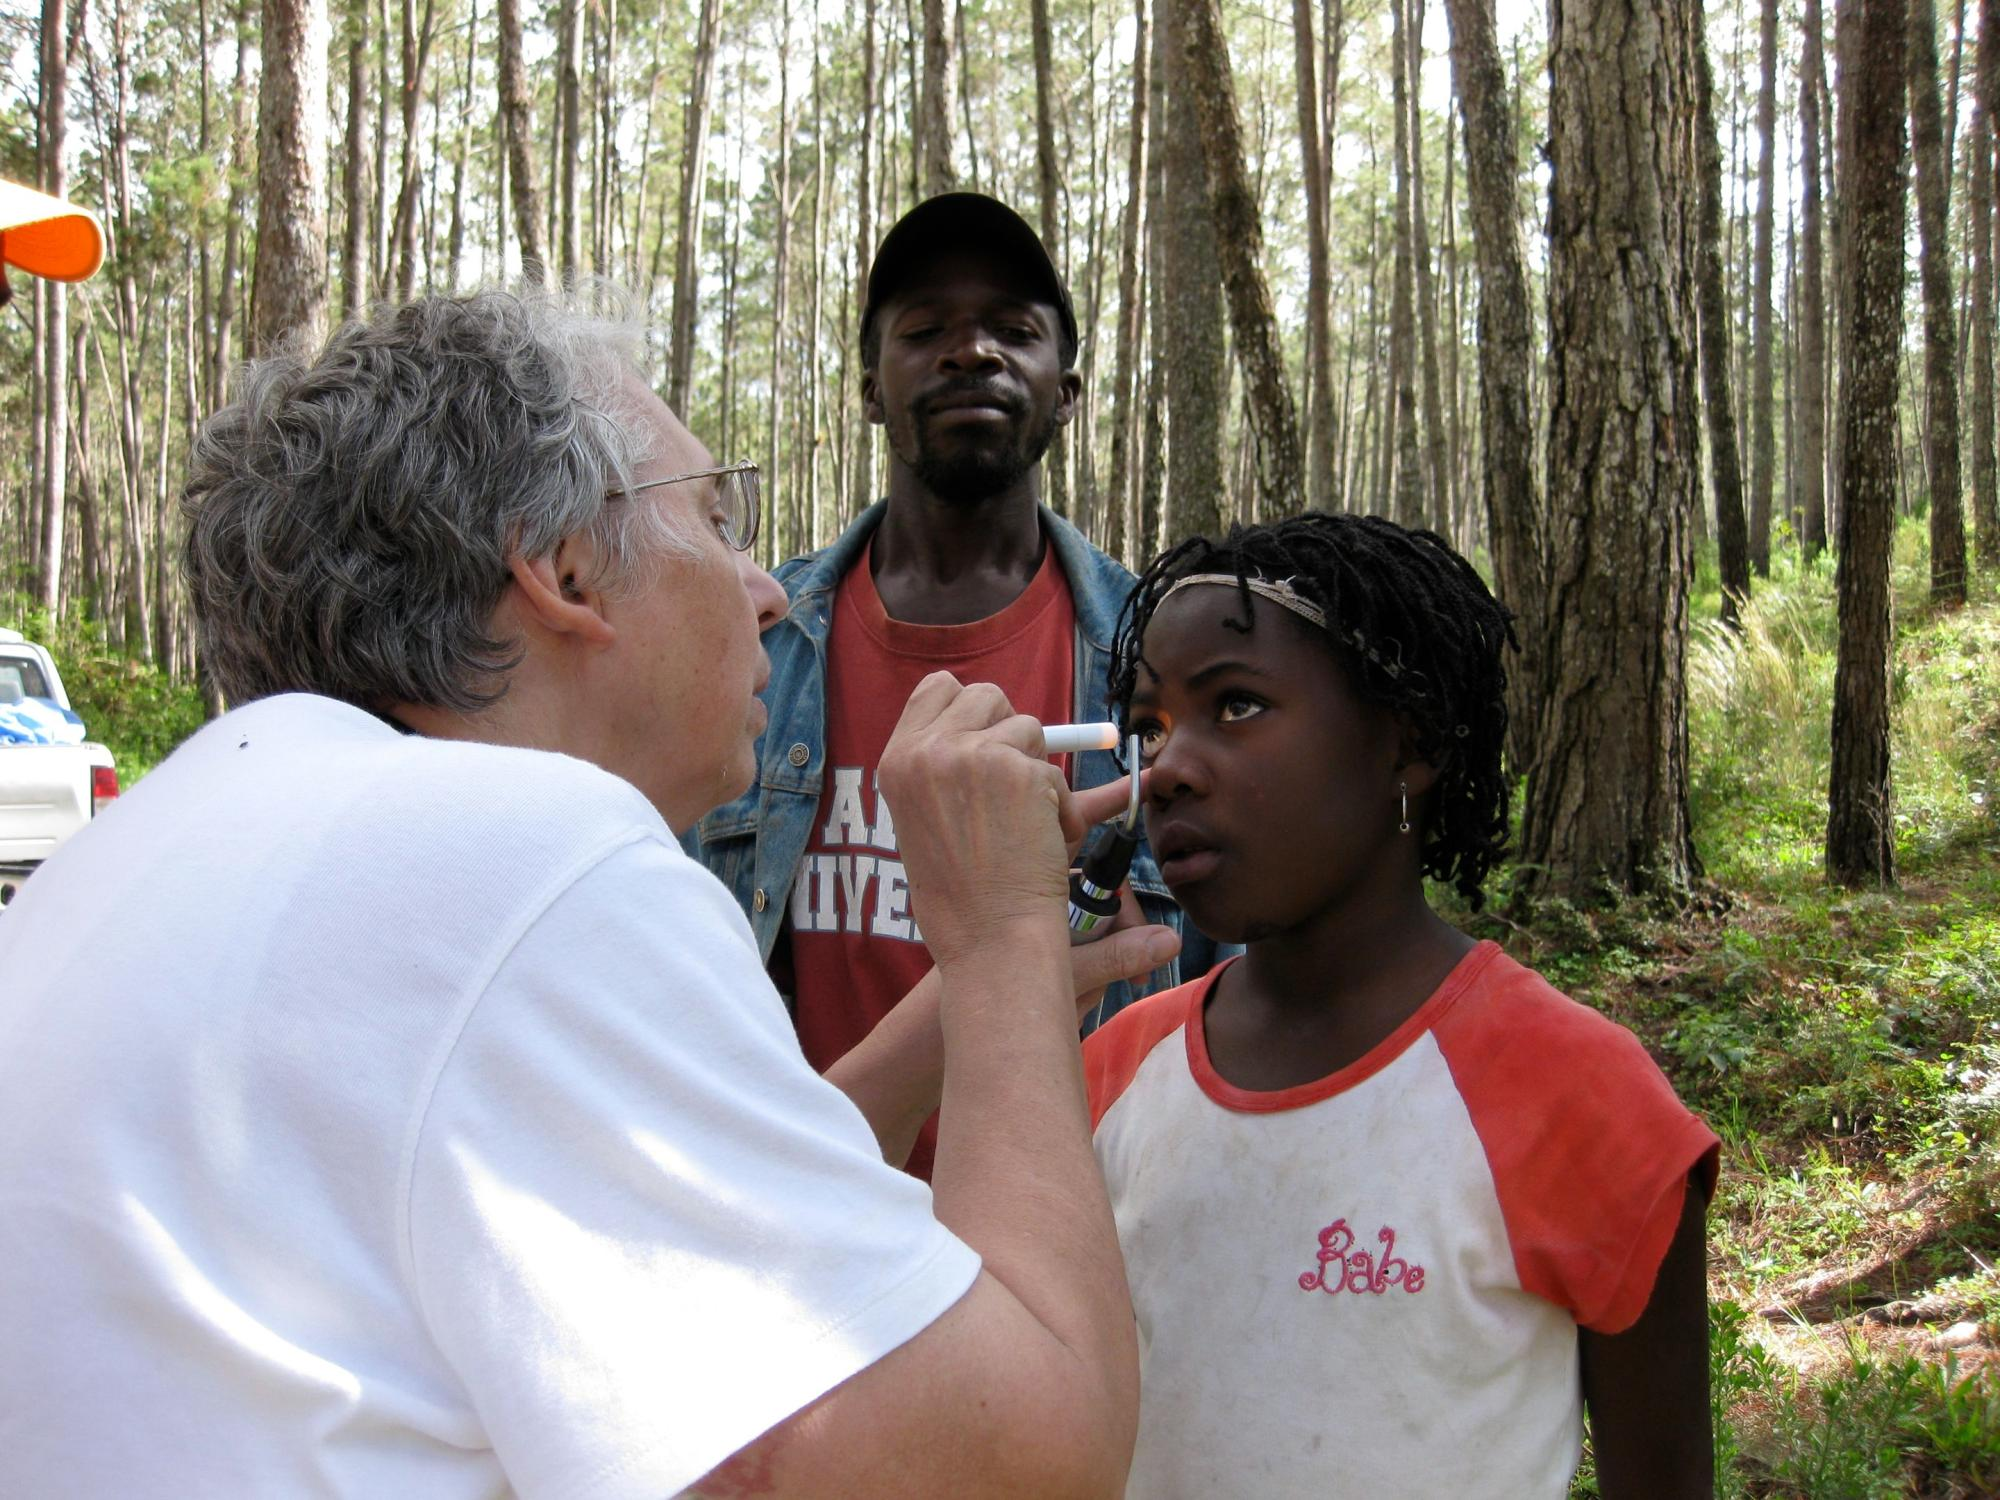 Dr10658._Martha_Willi_doing_eye_exam_in_Pine_Forest_while_car_being_repaired_0060_JPG.jpg